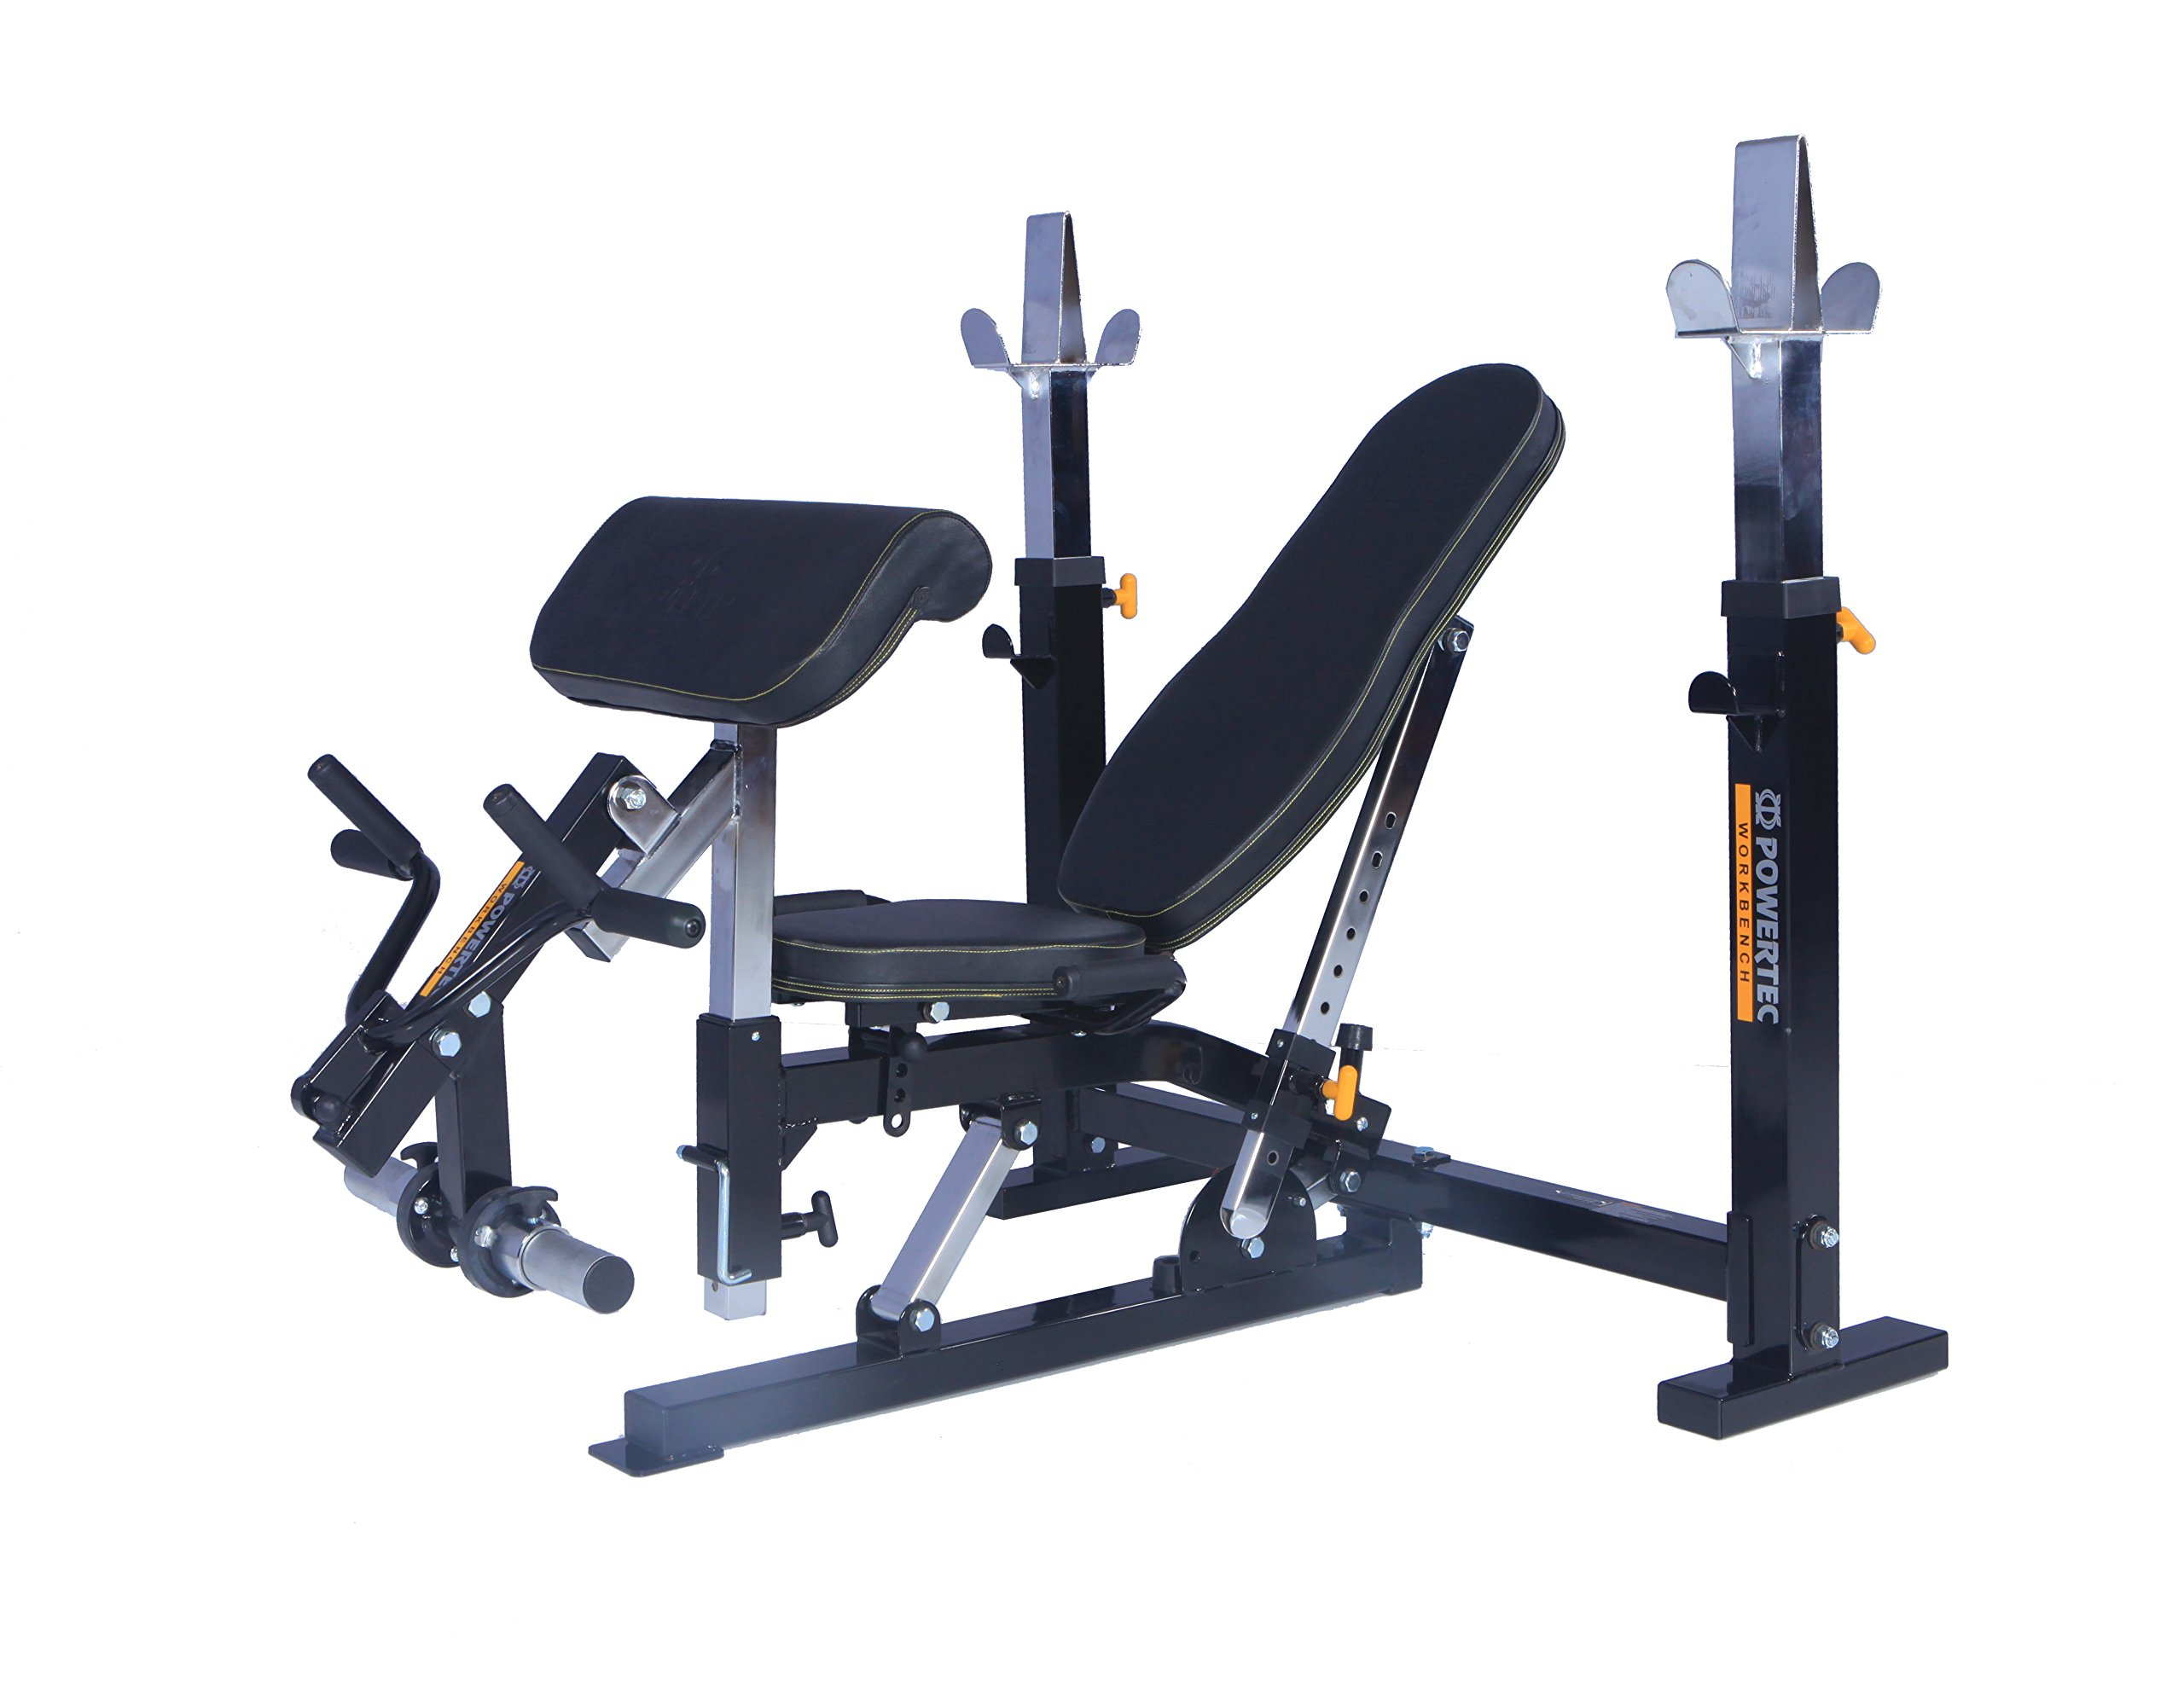 Powertec Workbench Olympic Bench (WB-OB15) + Curl Machine Accessory (WB-CMA16) by Powertec Fitness